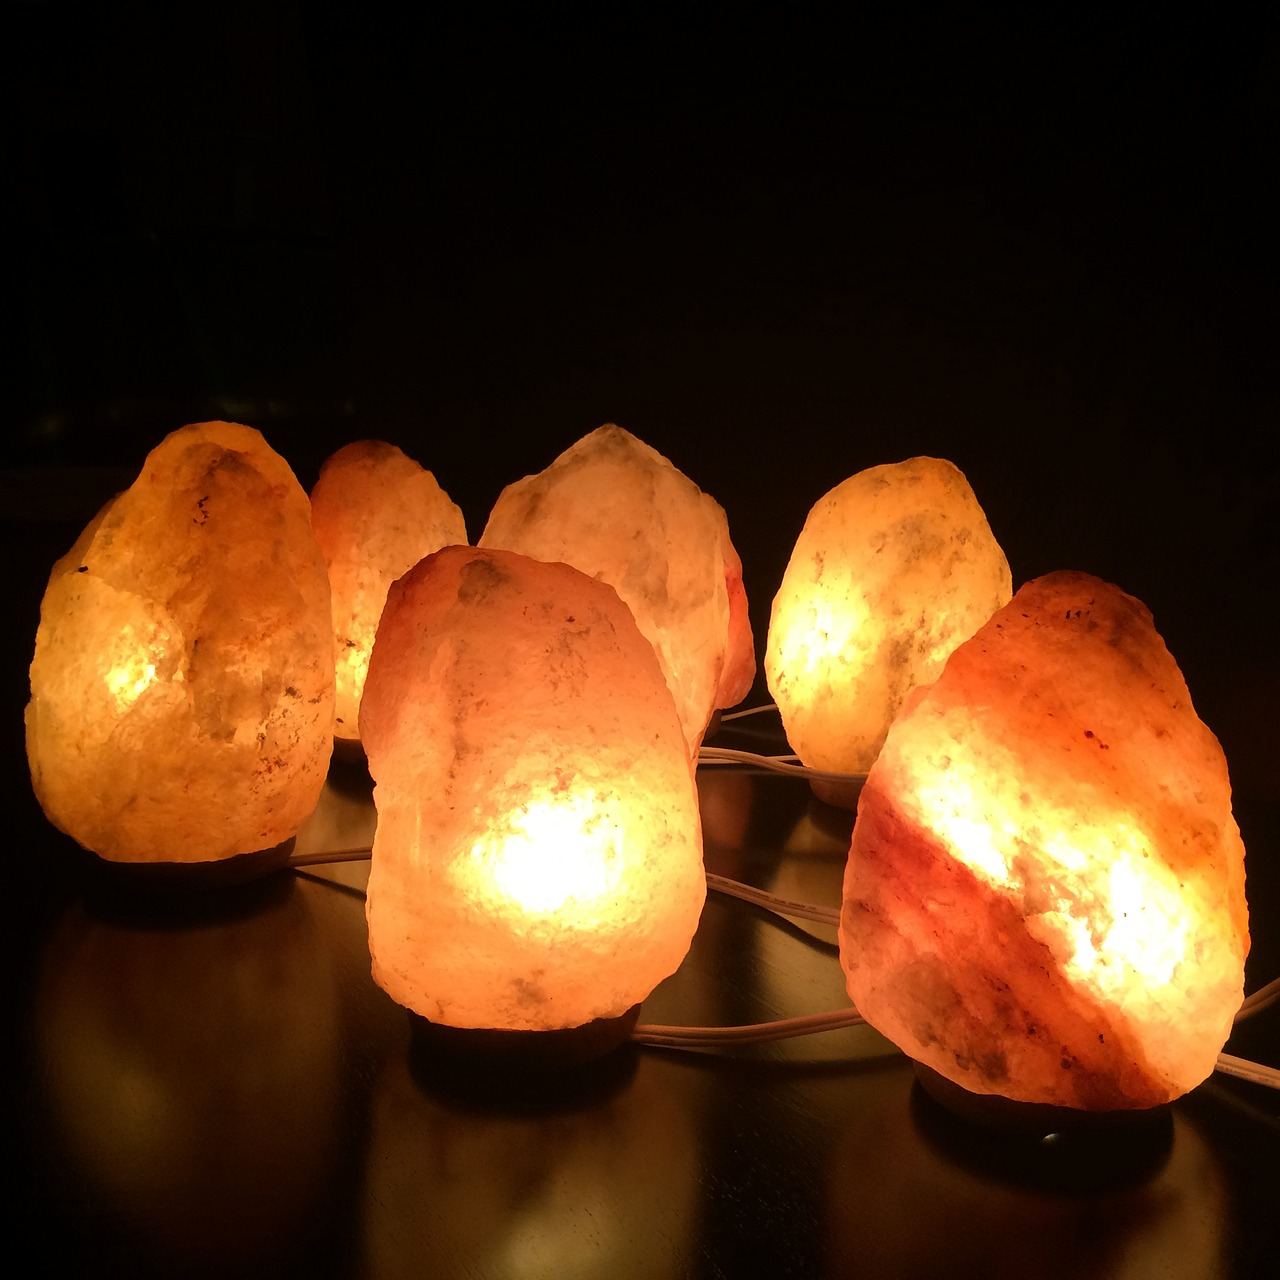 An in-depth review of the best salt lamps of 2019.